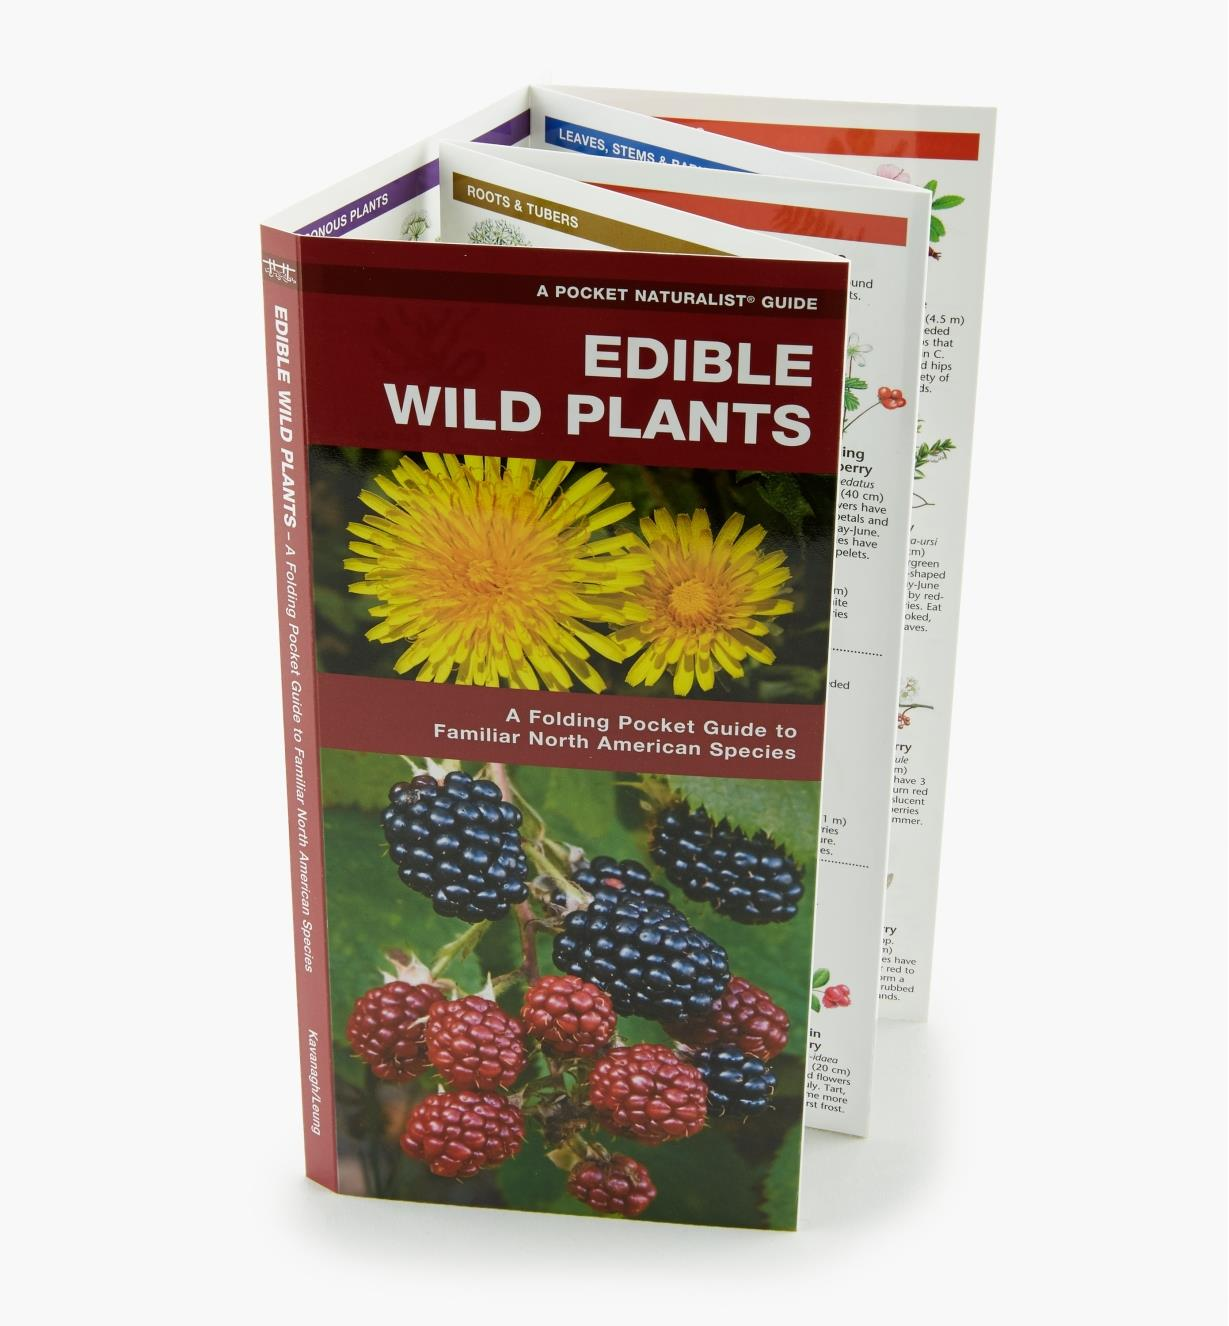 LA257 - Edible Wild Plants Pocket Guide